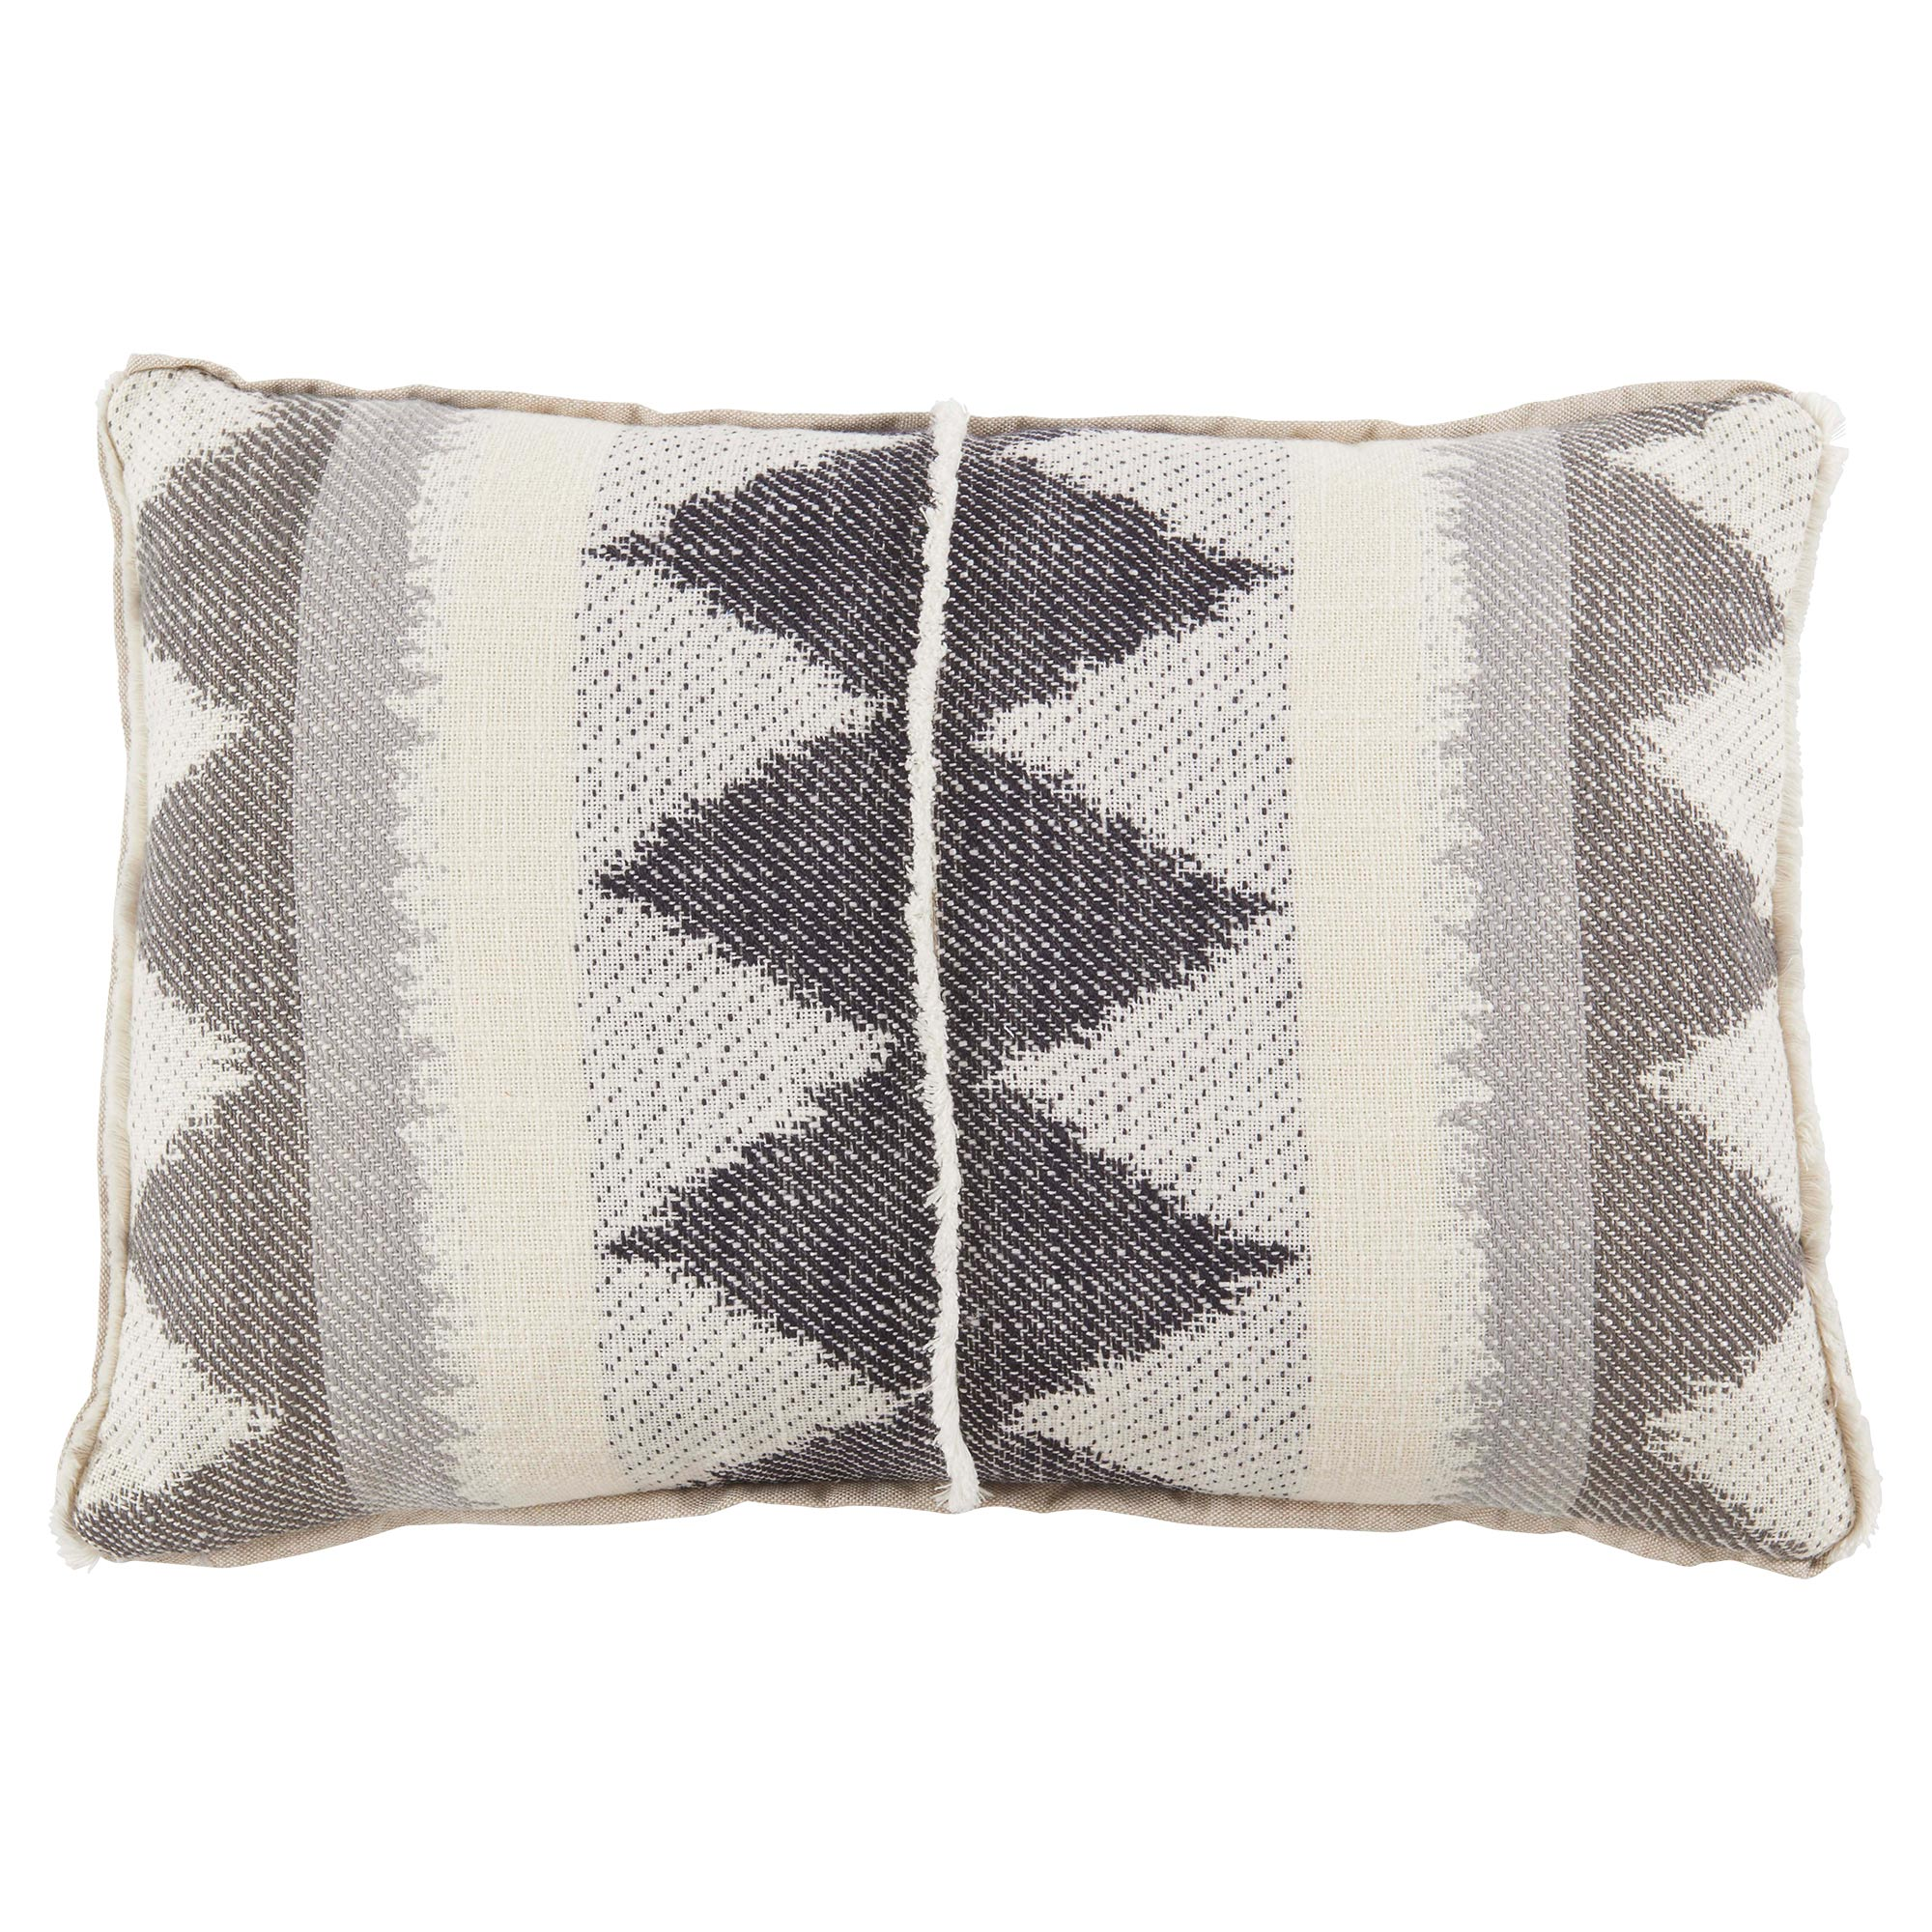 Lula Bazaar Fringe Diamond Charcoal Linen Pillow - 13x19